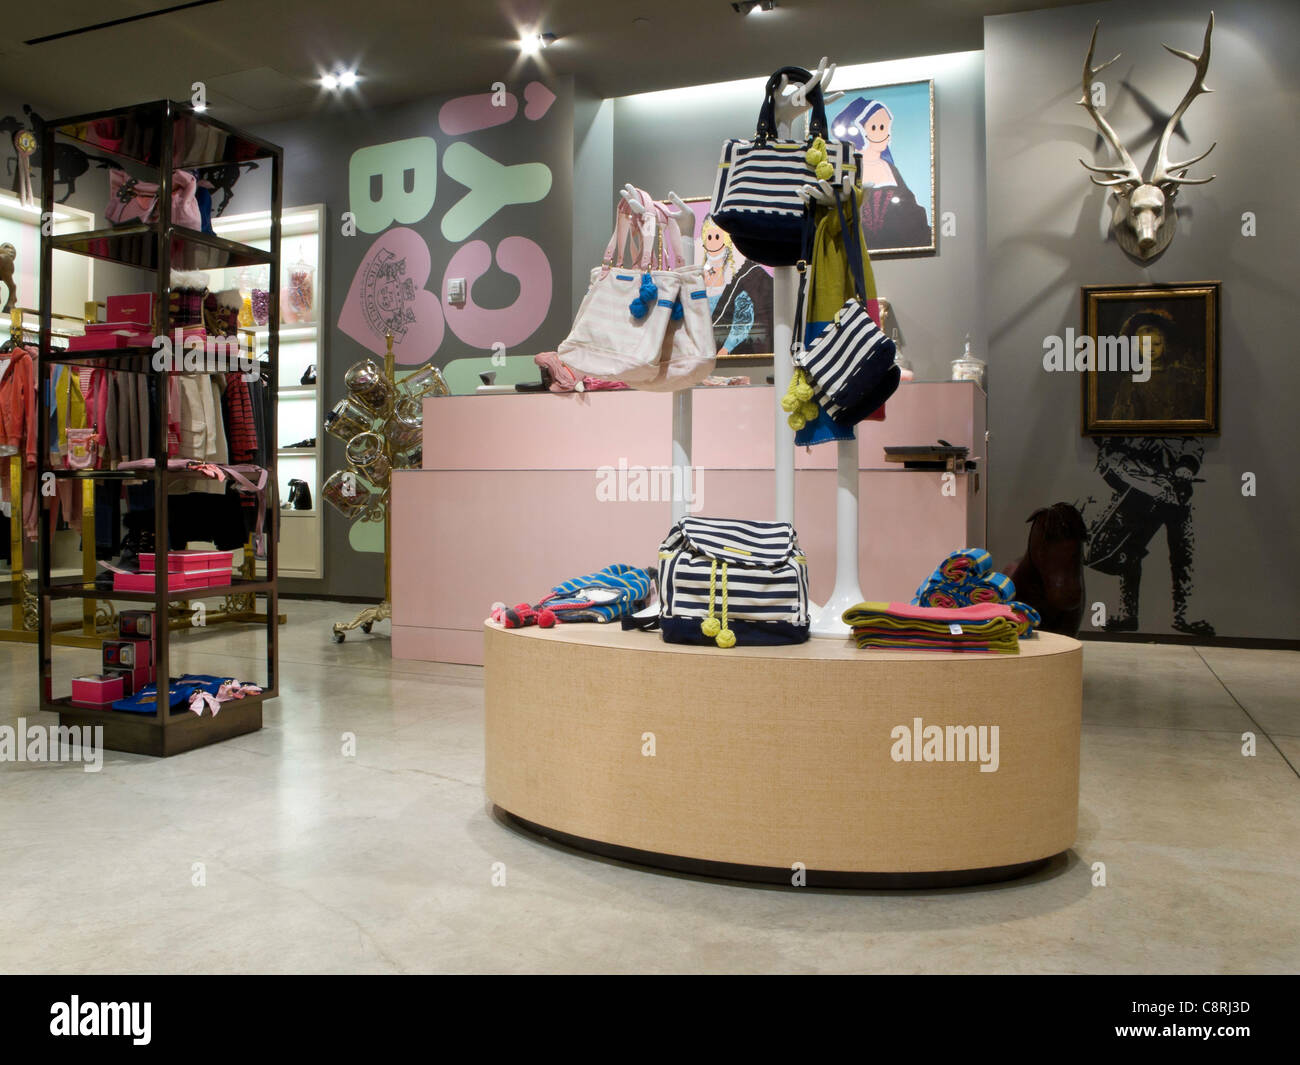 Juicy Couture, Baby's Clothes, Fifth Avenue, NYC - Stock Image